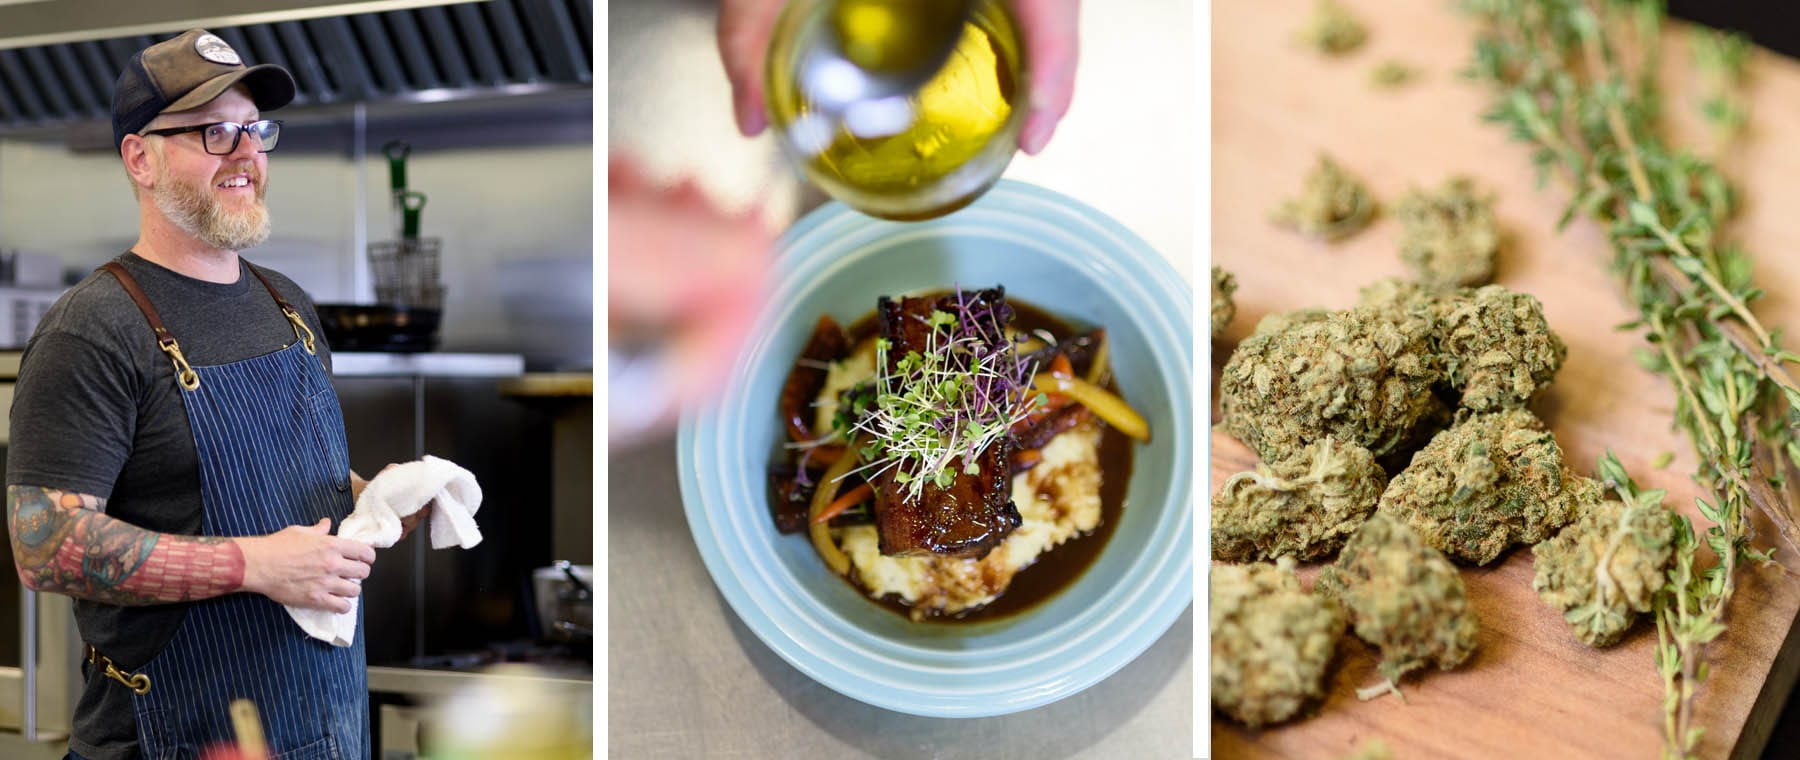 Cooking with Cannabis: Ottawa chef Mike Derouin prepares the perfect four-course meal